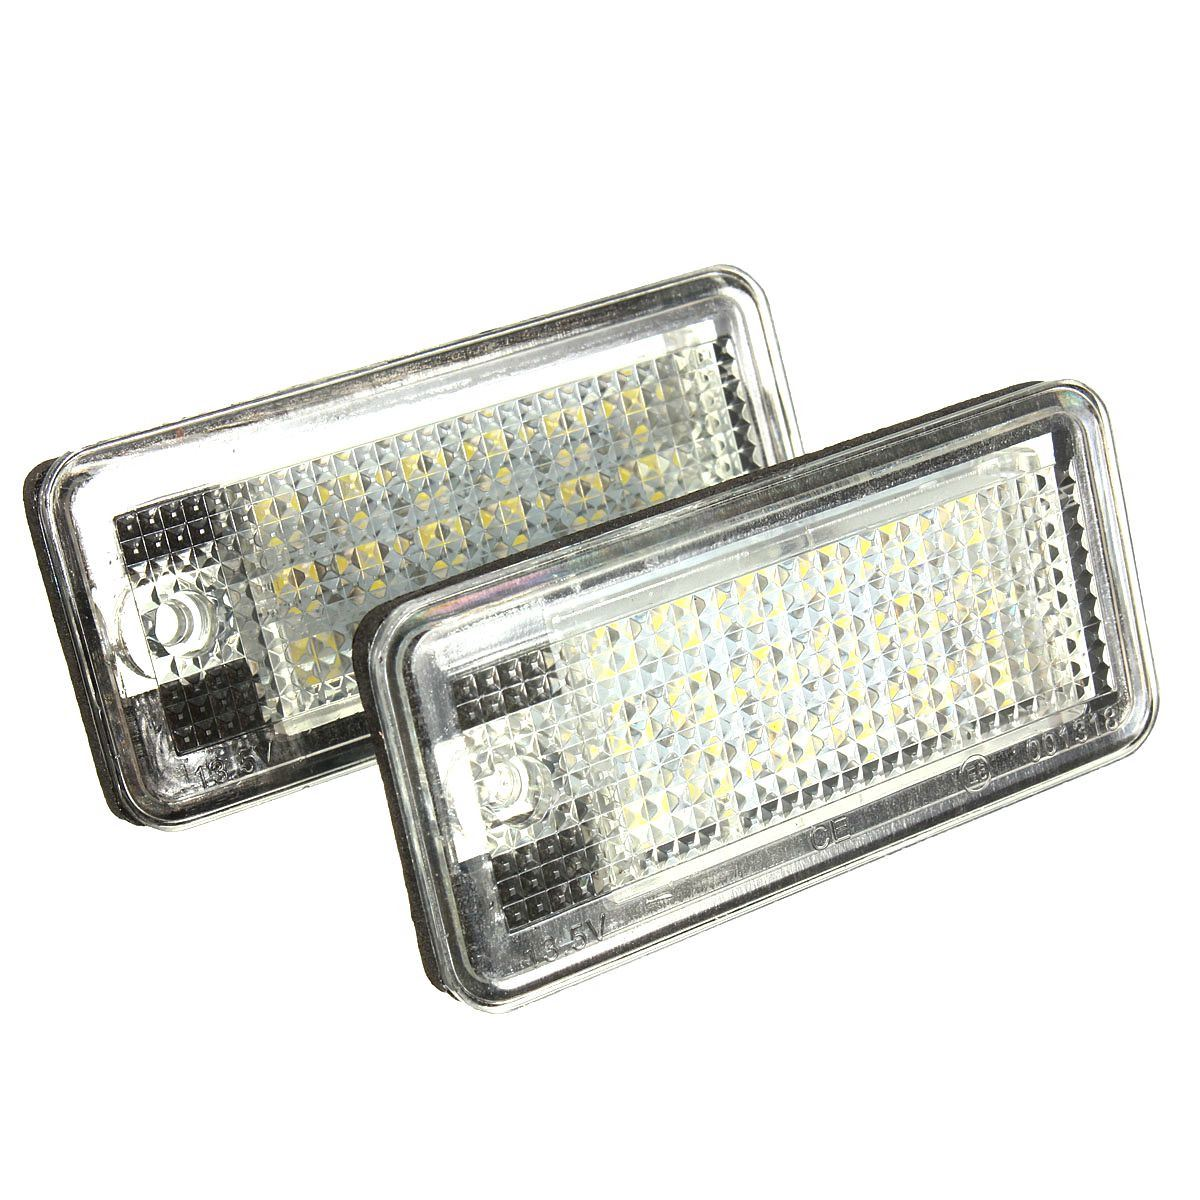 цены 2 White Car Error 18 LED License Number Plate Light Lamp For Audi A3 S3 A4 S4 B6 B7 A6 S6 A8 Q7